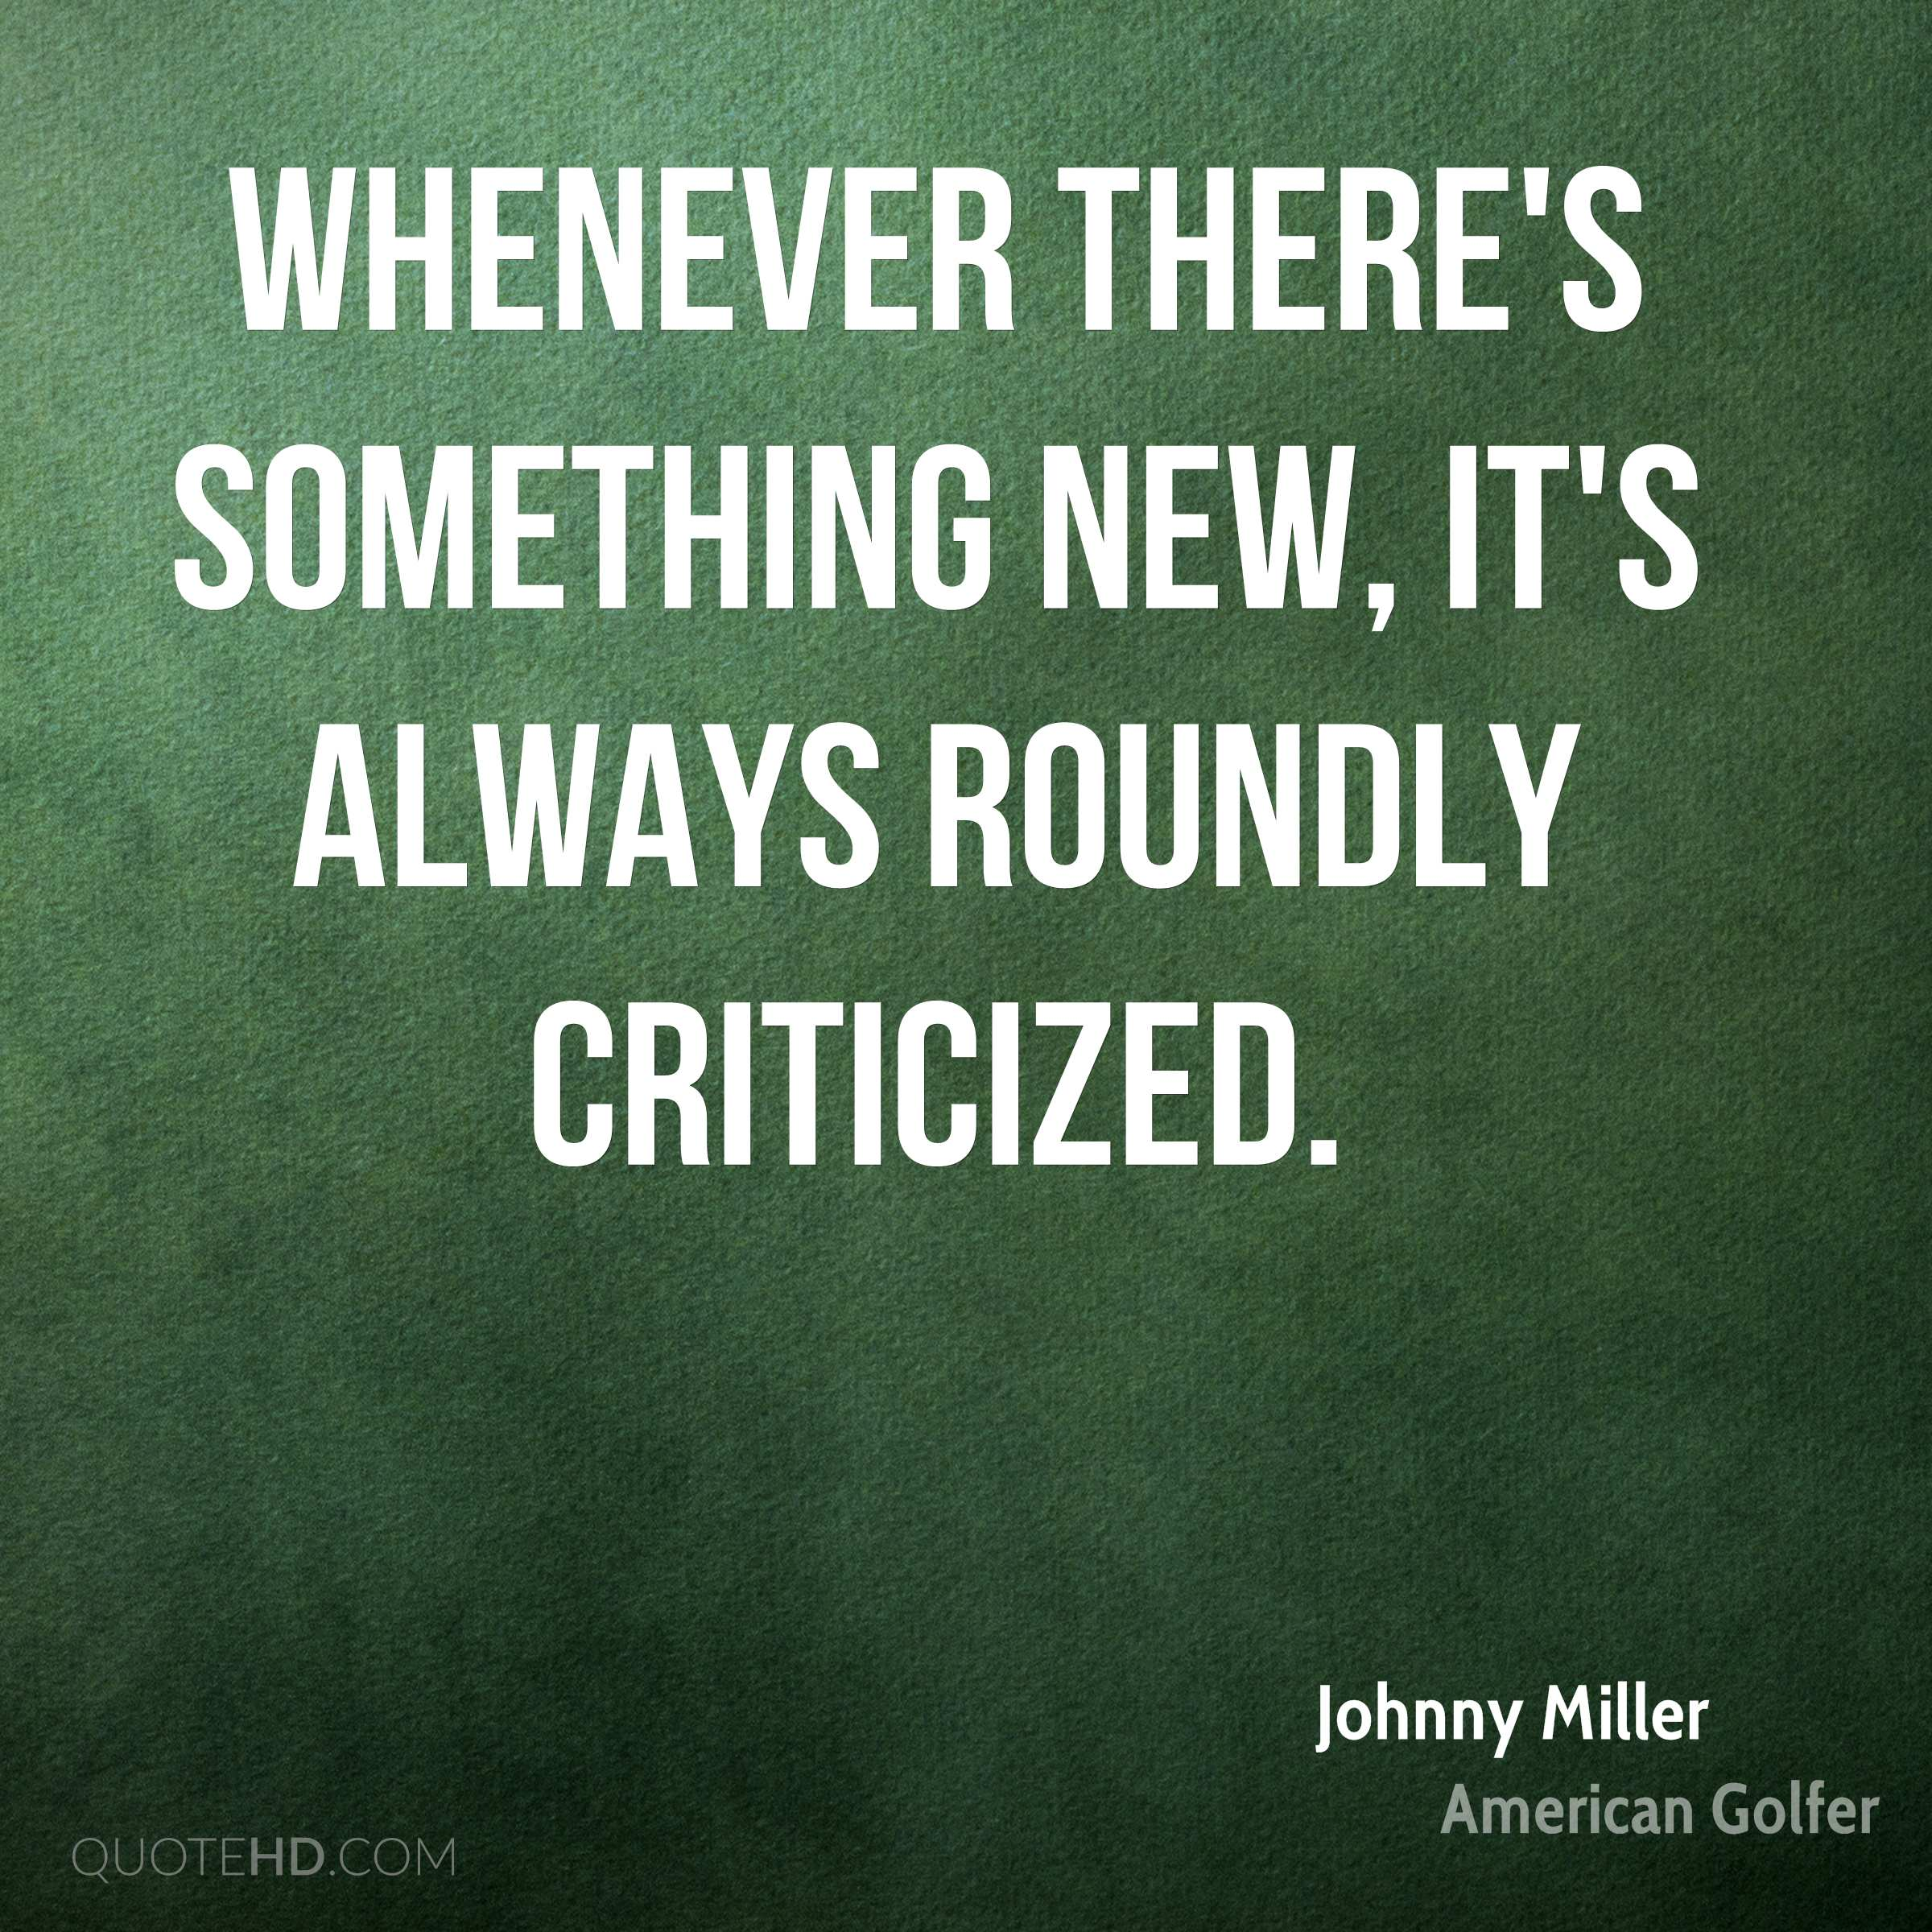 Whenever there's something new, it's always roundly criticized.